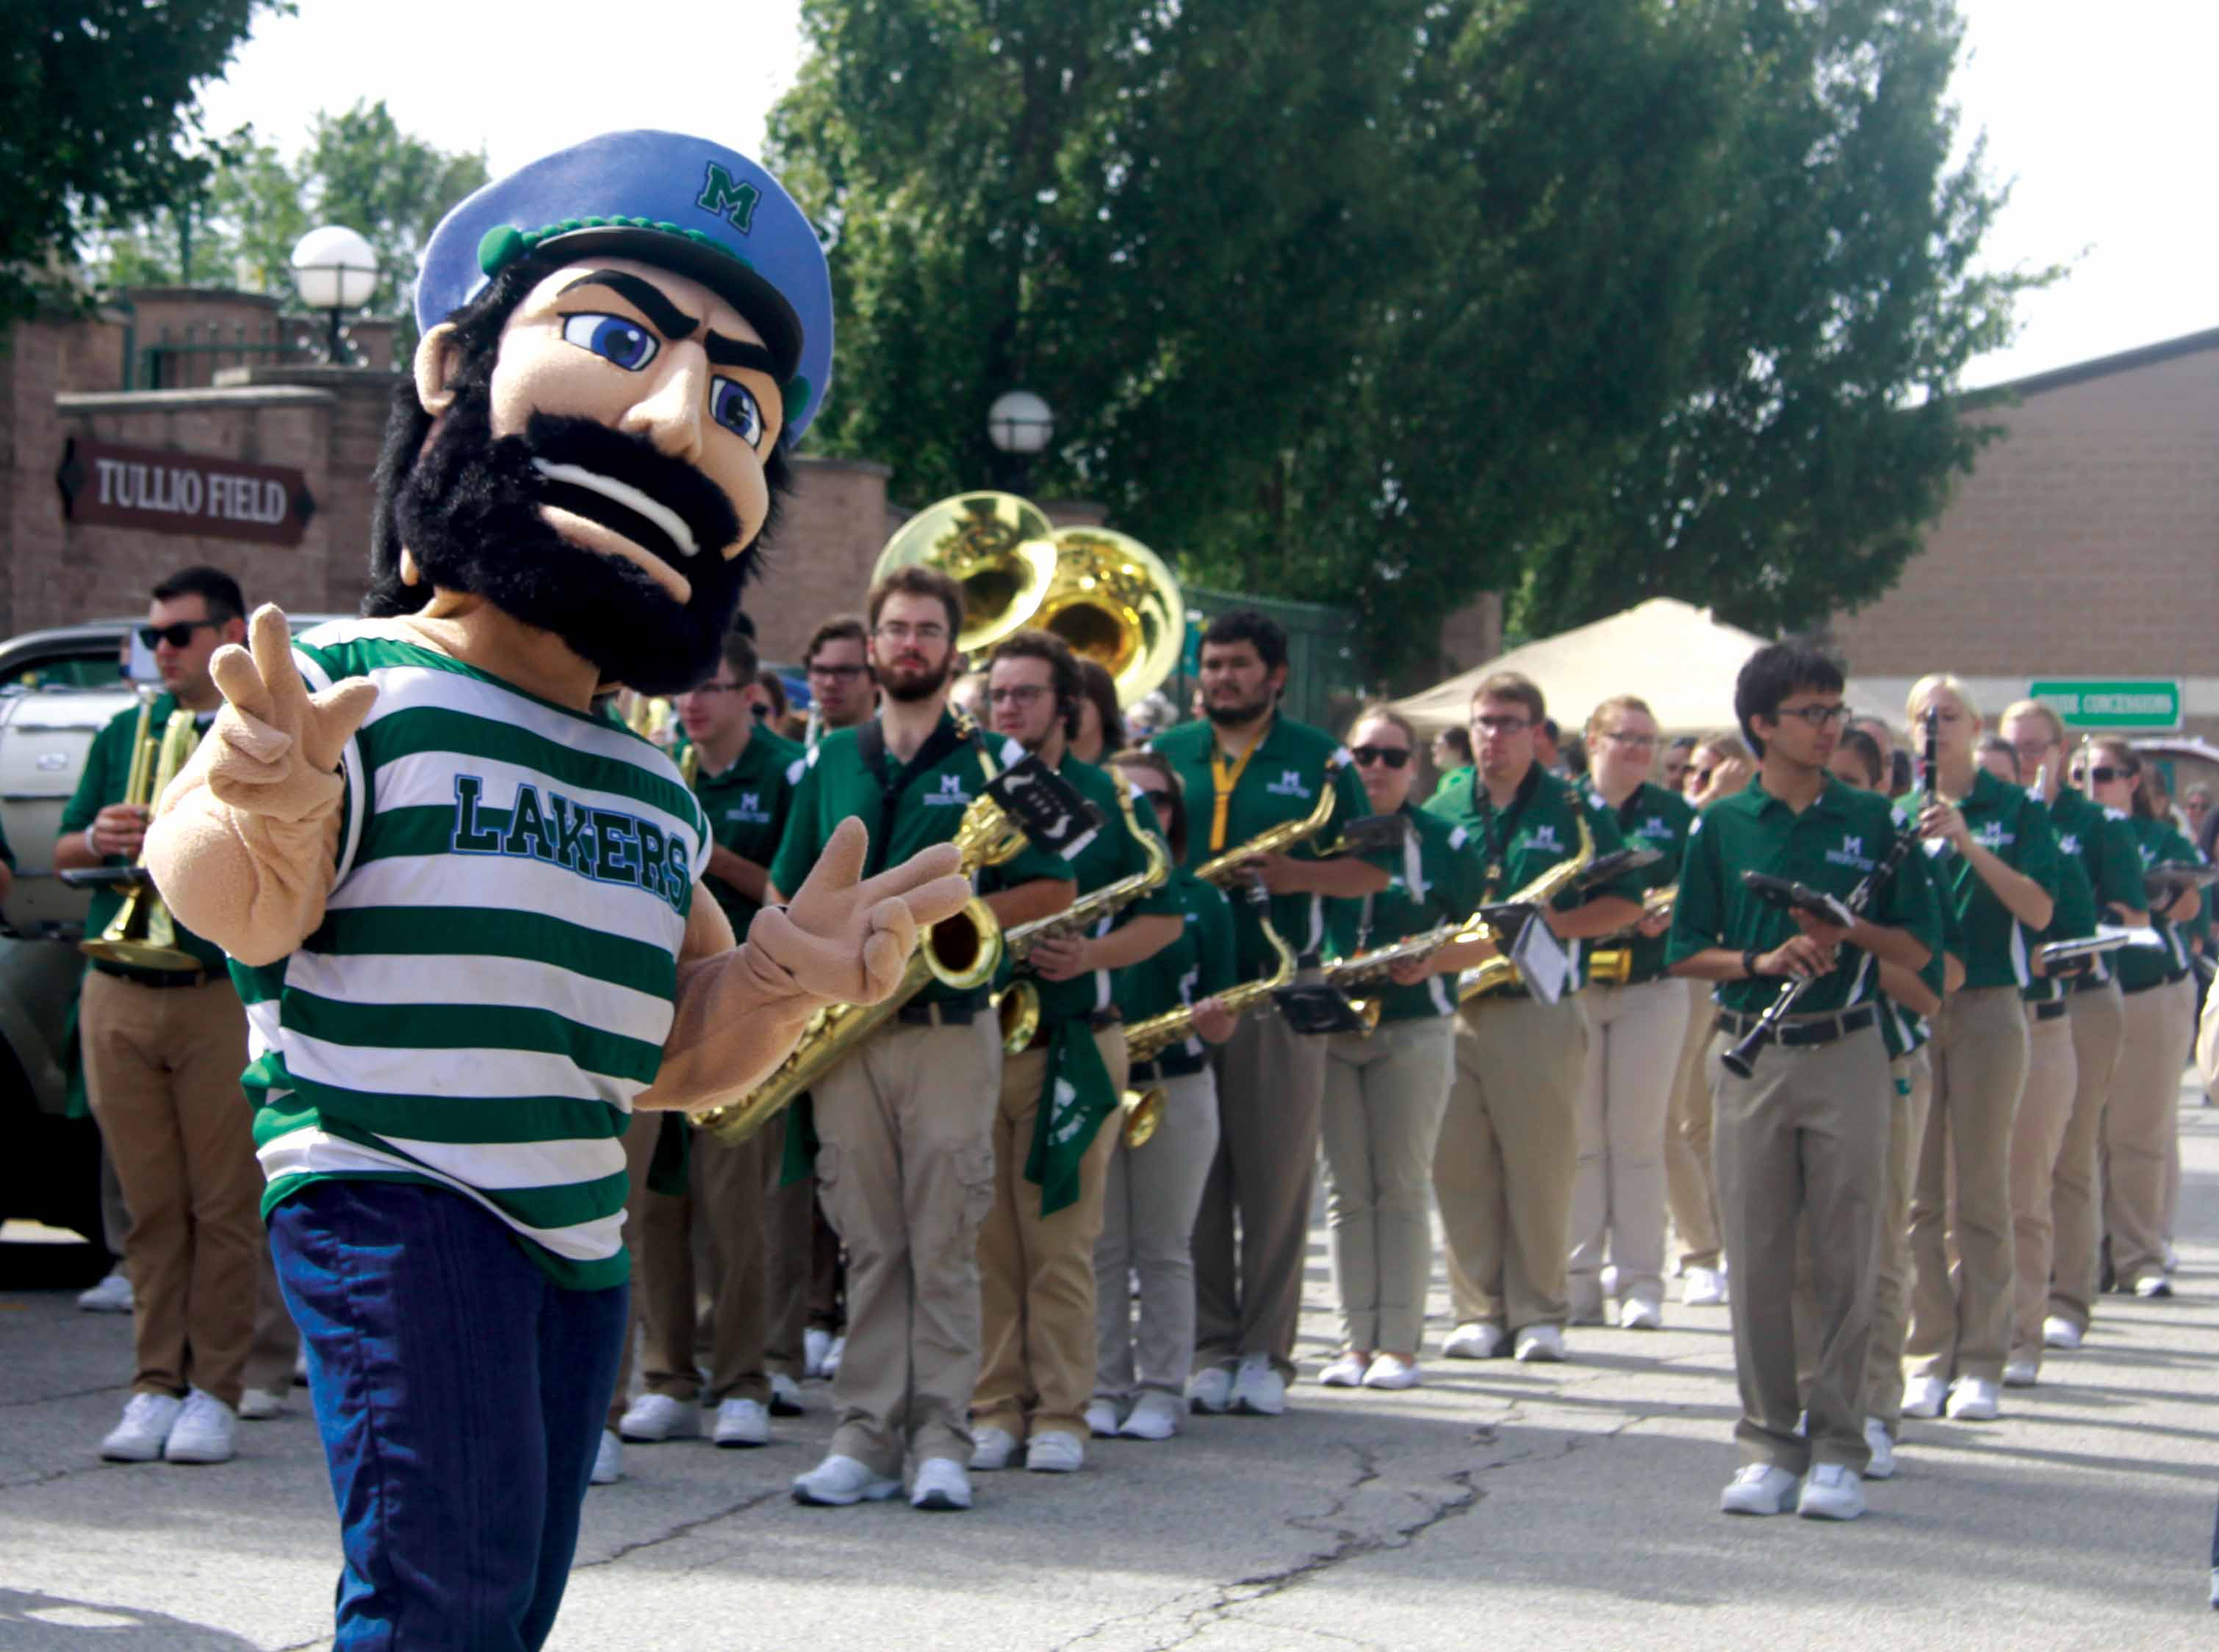 Luke the Laker poses with the Mercyhurst band.